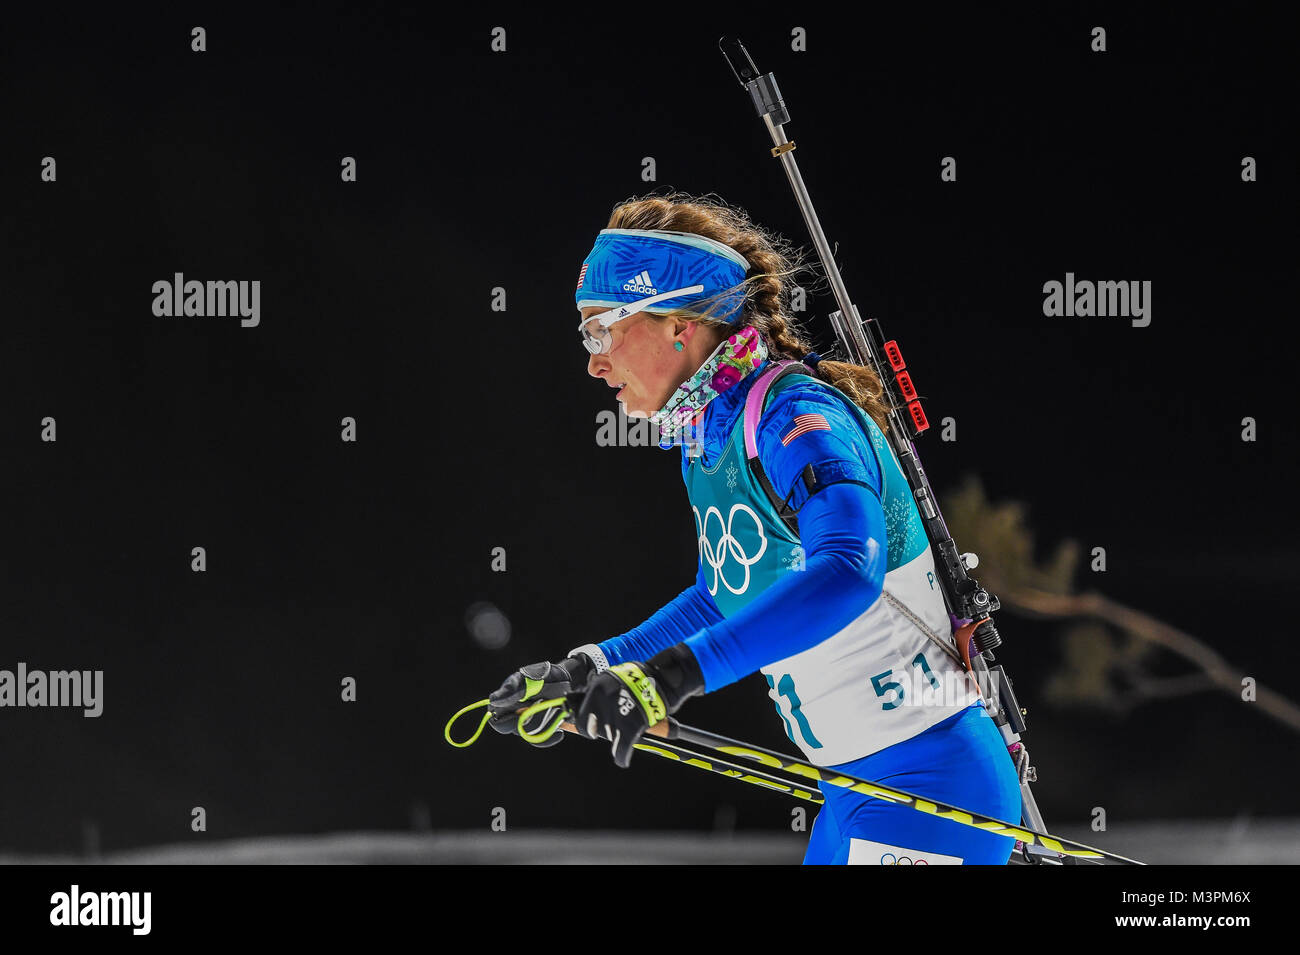 Pyeongchang, South Korea. February 12, 2018: Vanessa Hinz of Germany competing at Women's 10km Pursuit, - Stock Image